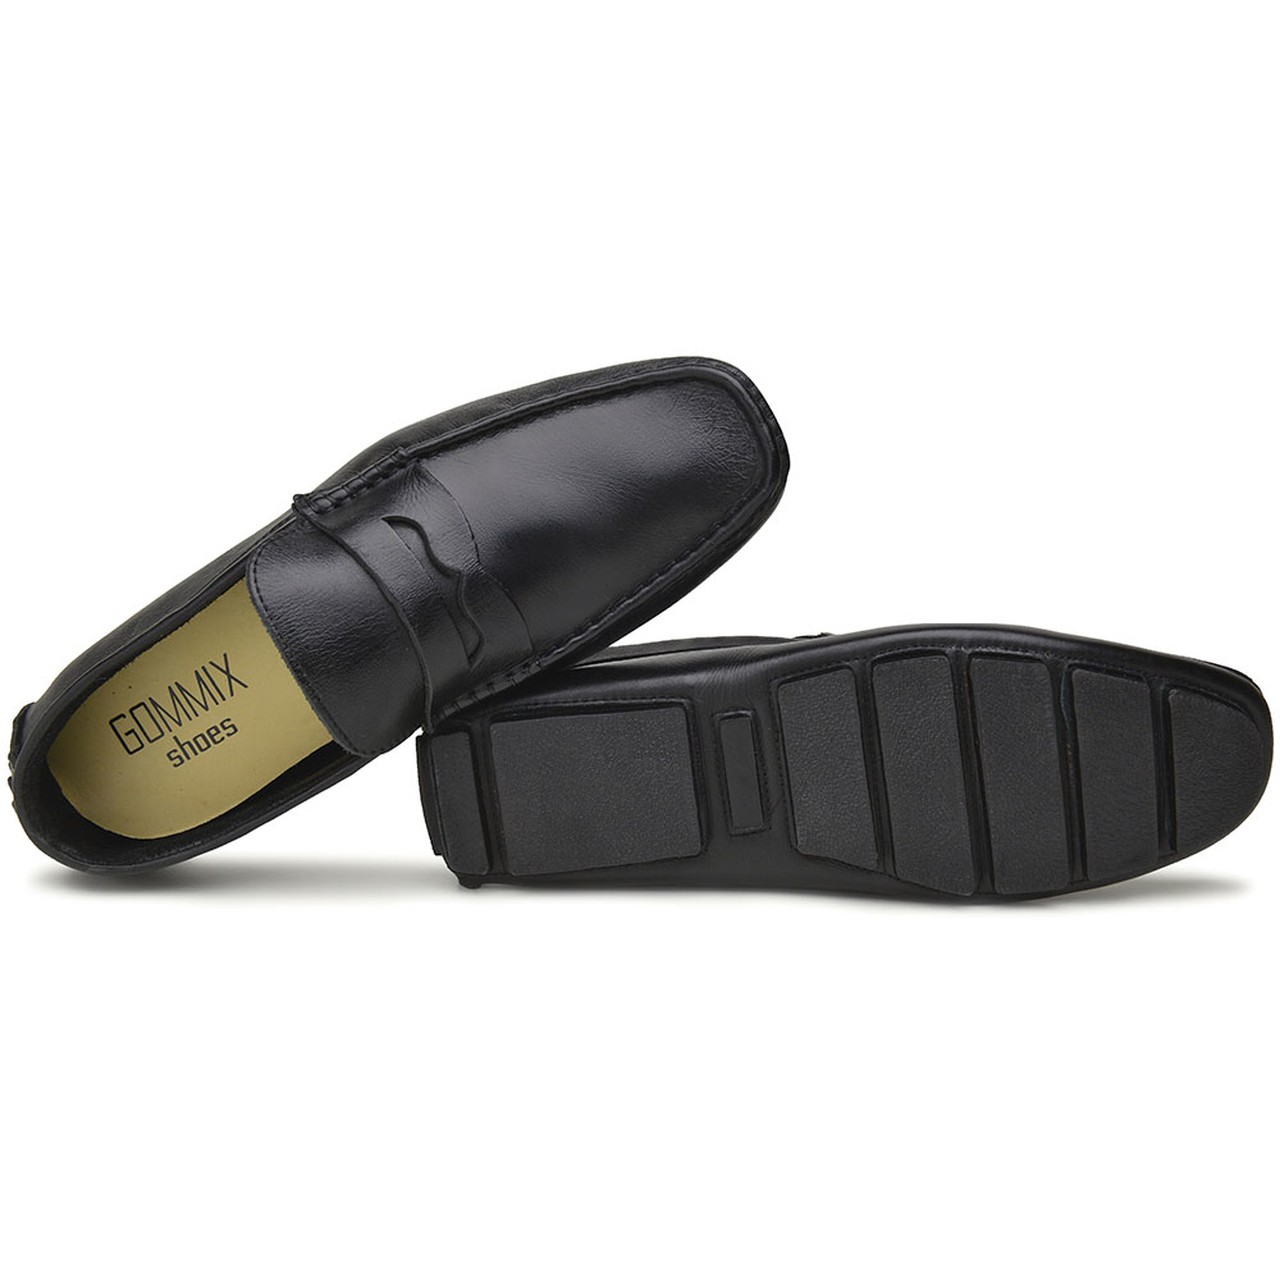 Mocassim Drive Masculino Gommix Shoes 1001- pto